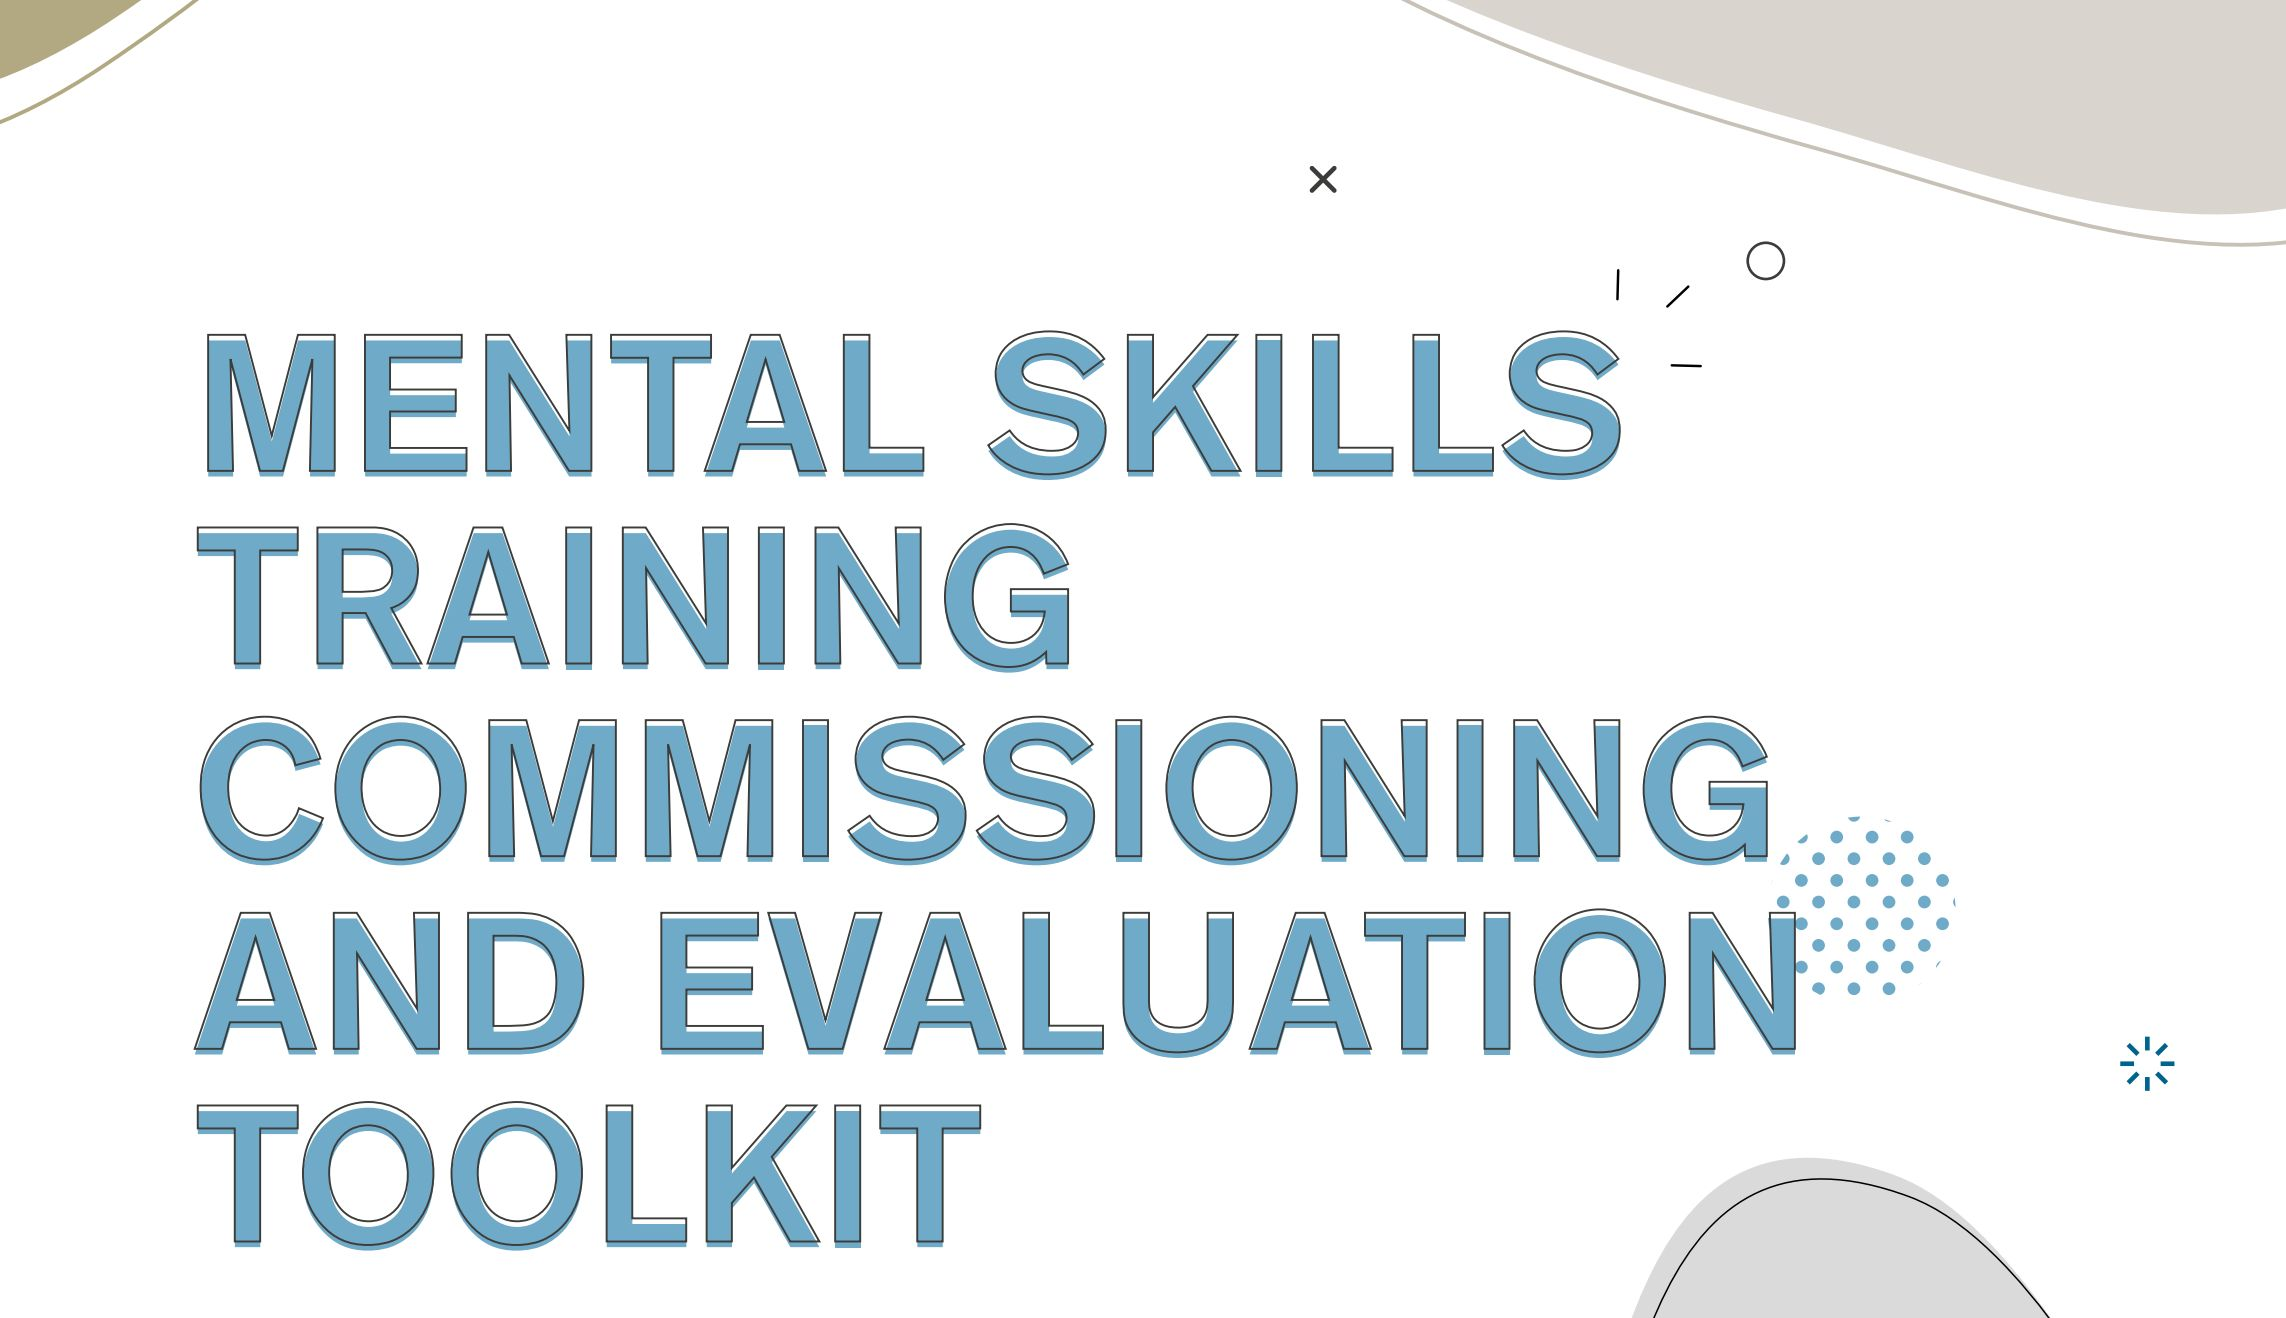 Mental Skills Training Commissioning and Evaluation Toolkit launched